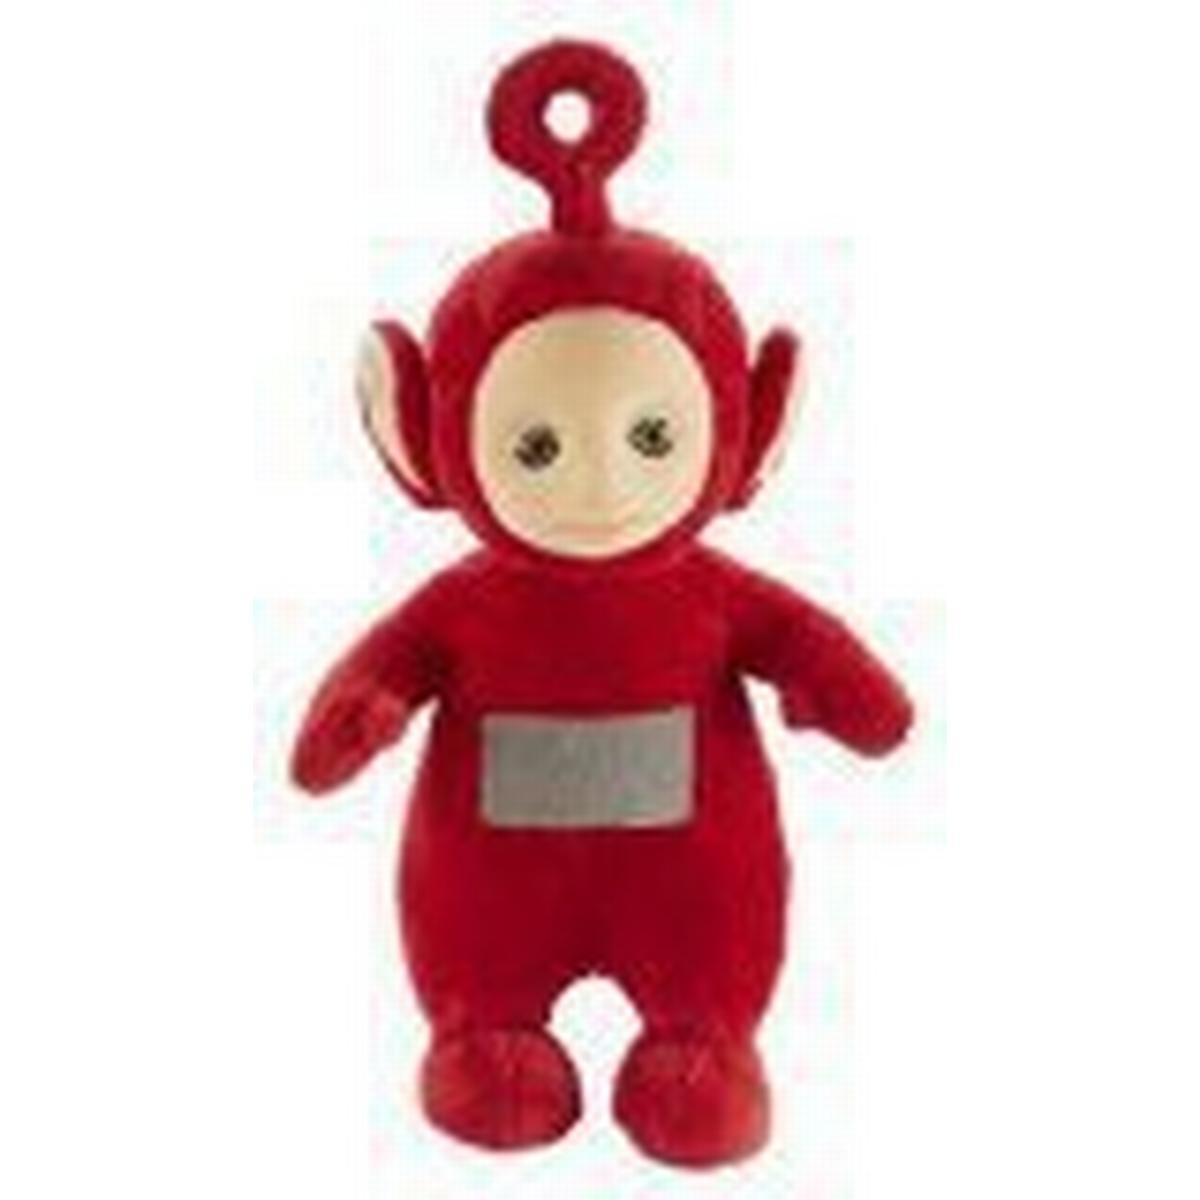 9cb1b39c84b306 Compare best Teletubbies Toys prices on the market - PriceRunner